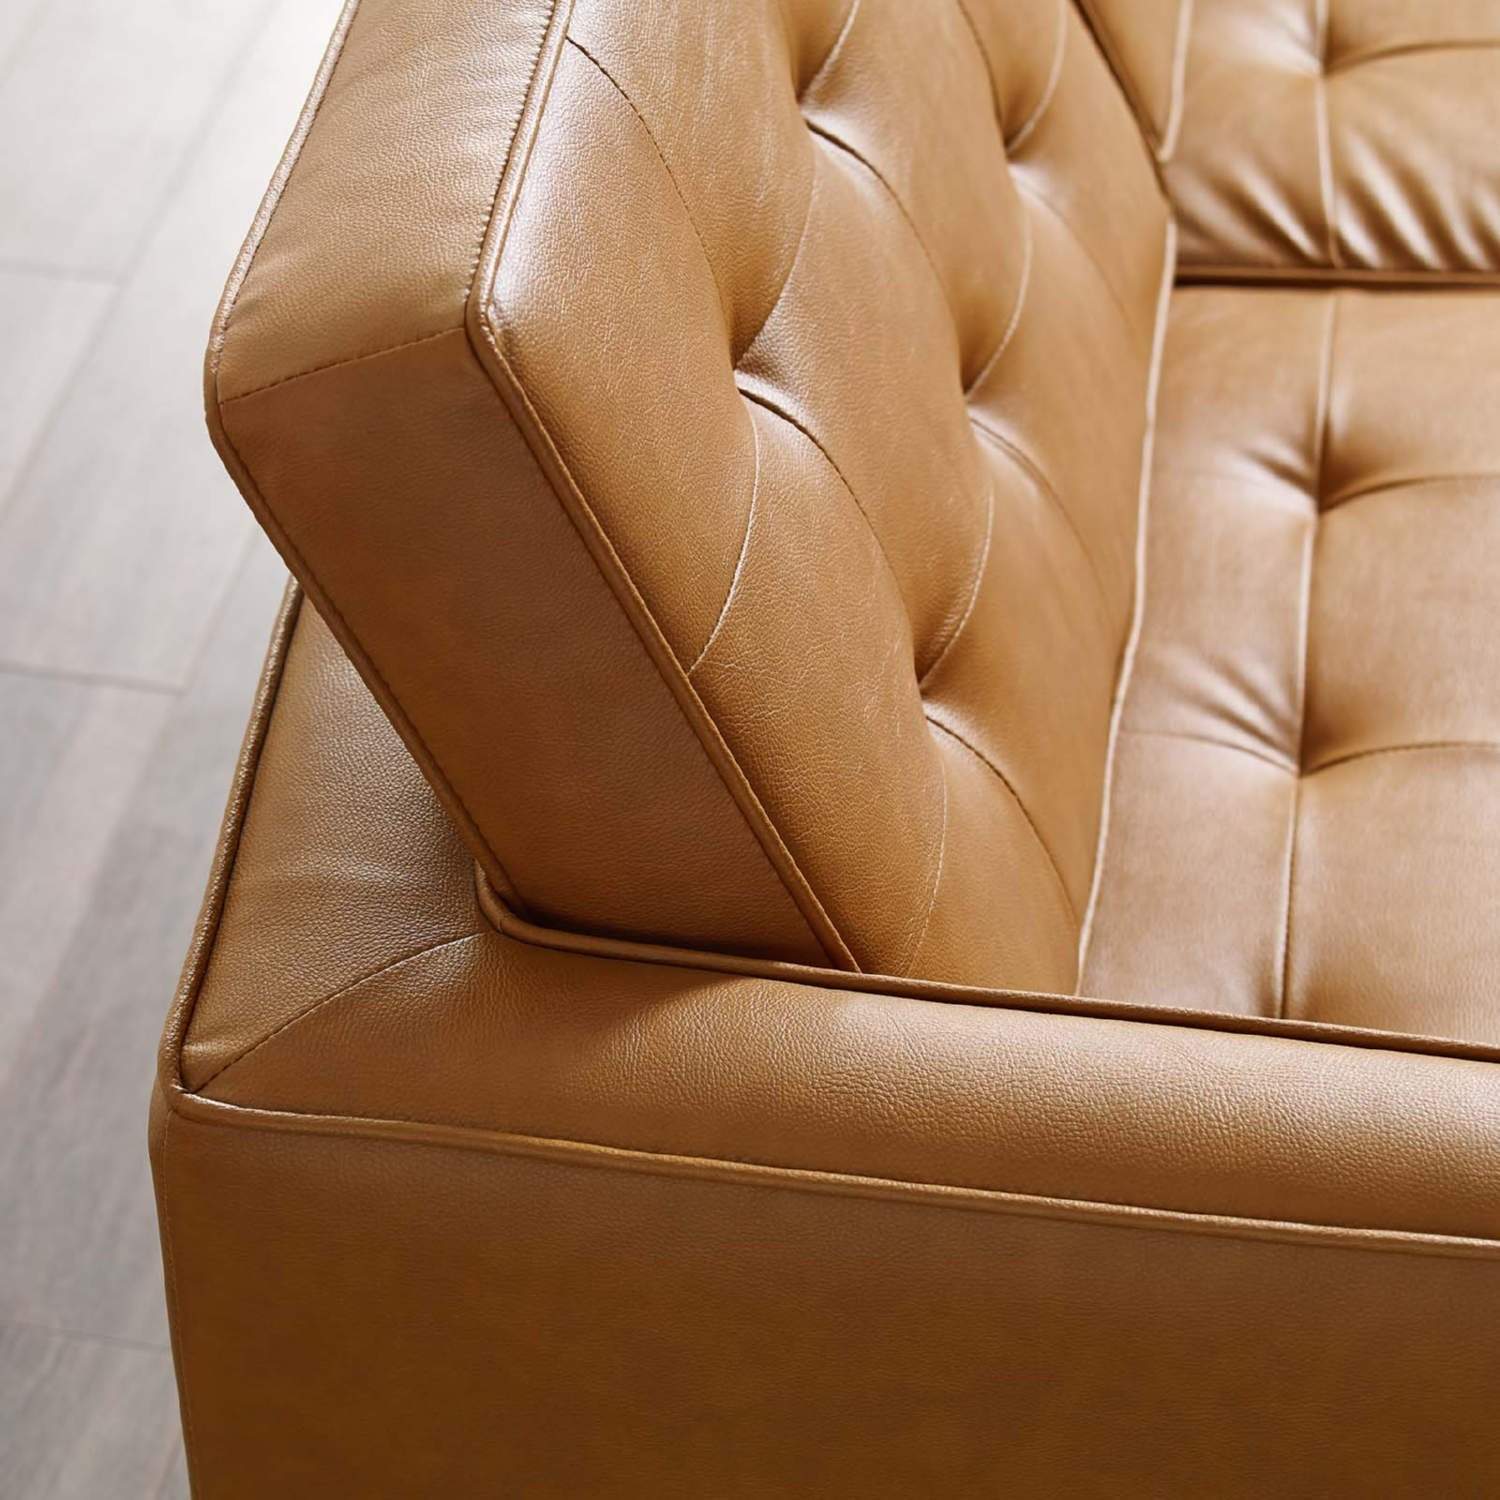 Modern Sofa In Tan Faux Leather Upholstery - image-3